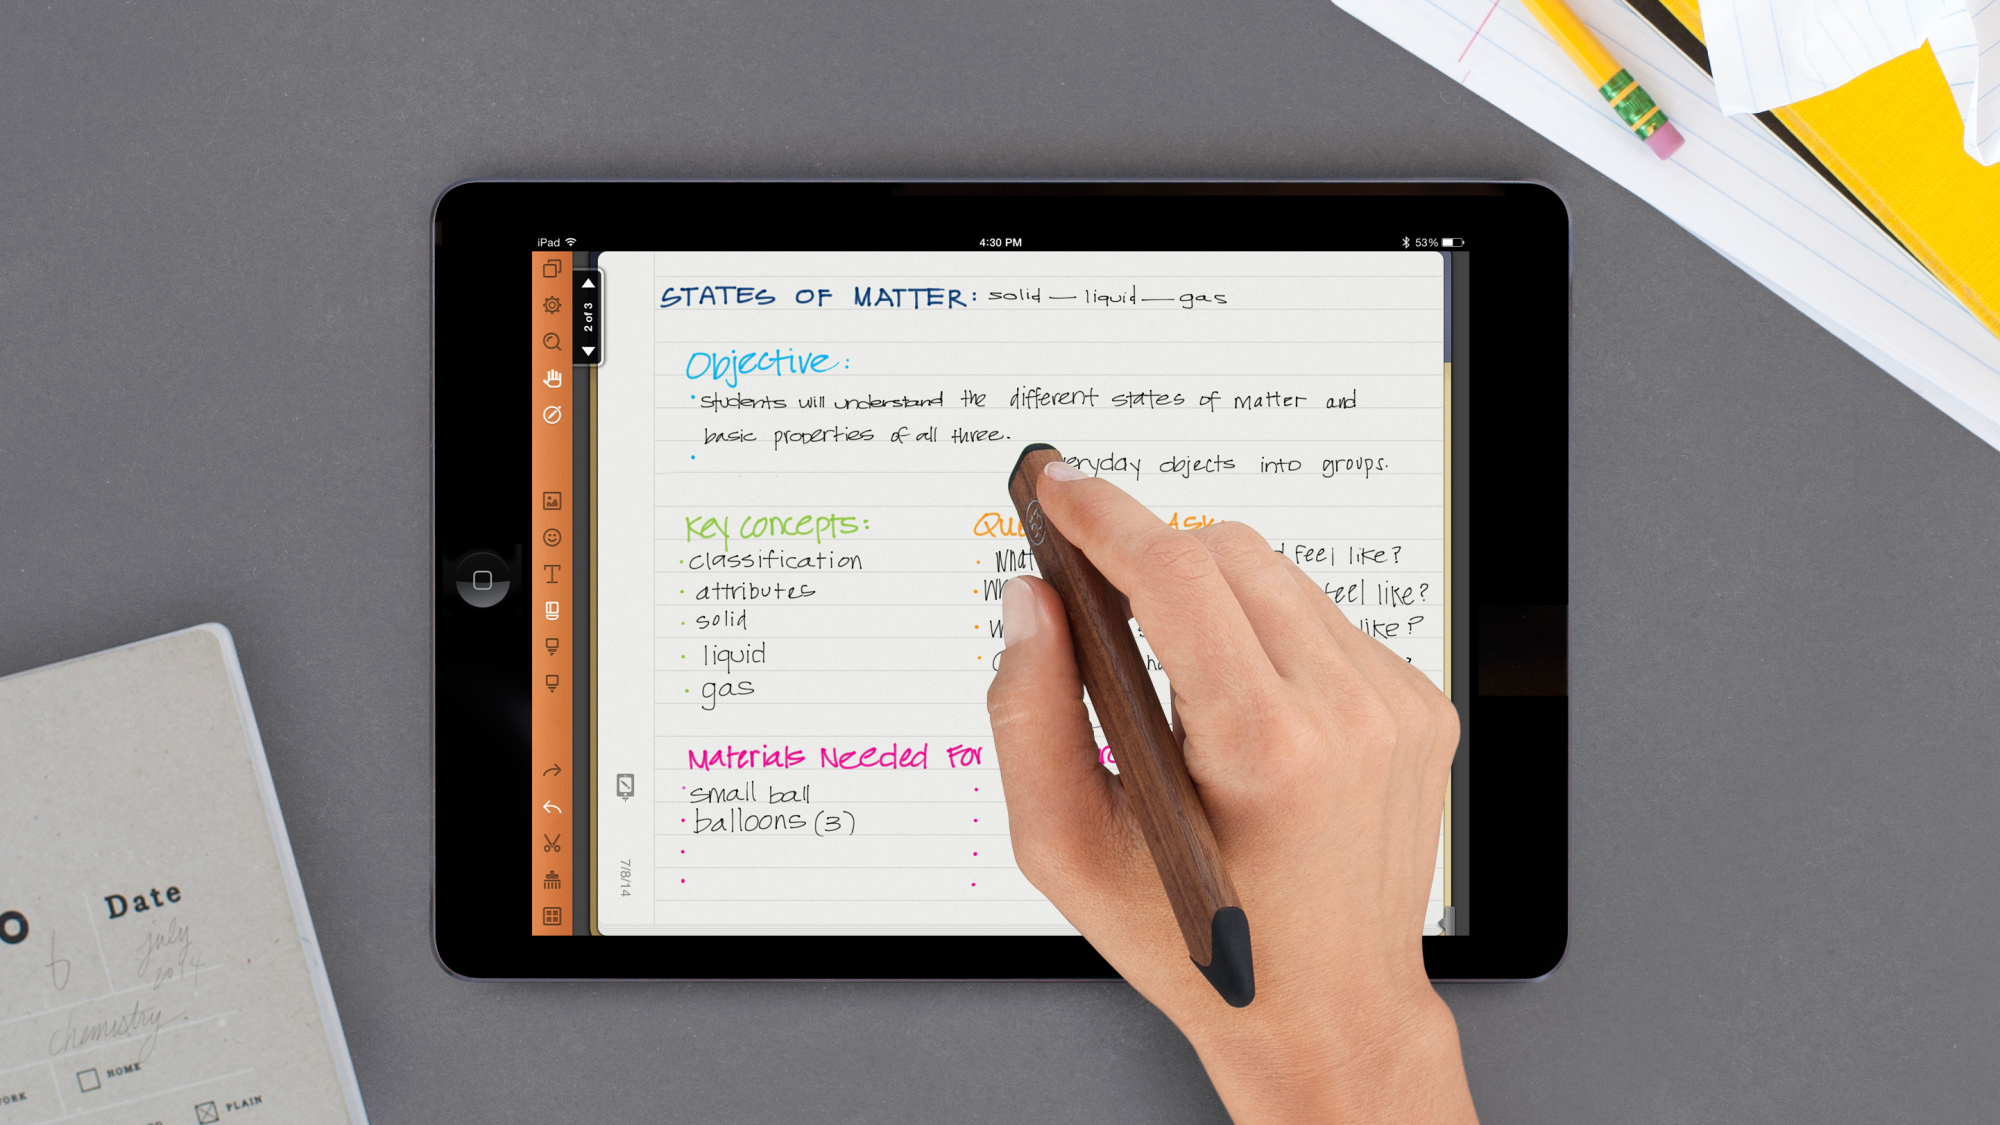 best handwriting app for ipad Penultimate comes from the developers of the famous note taking app called evernote the app aims to help you make your handwriting the best on your ipad with the app on your device, you can write and draw distract free and have full control over whatever you are doing on the screen.